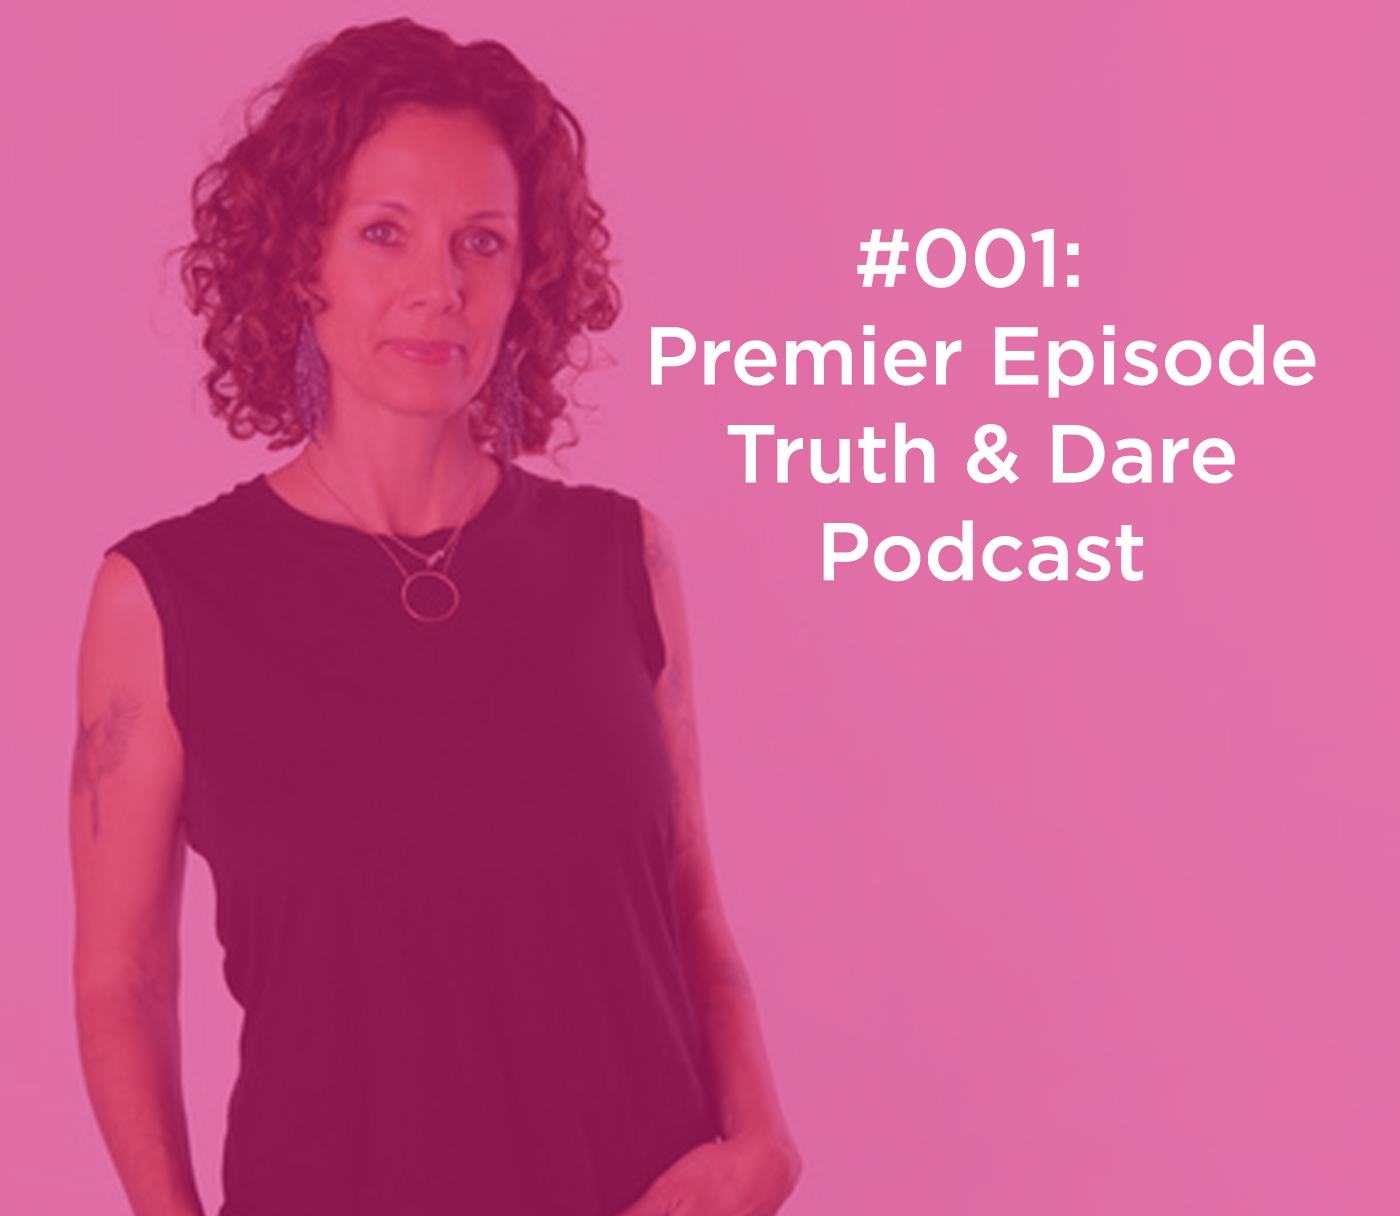 Truth & Dare Podcast Premier Episode